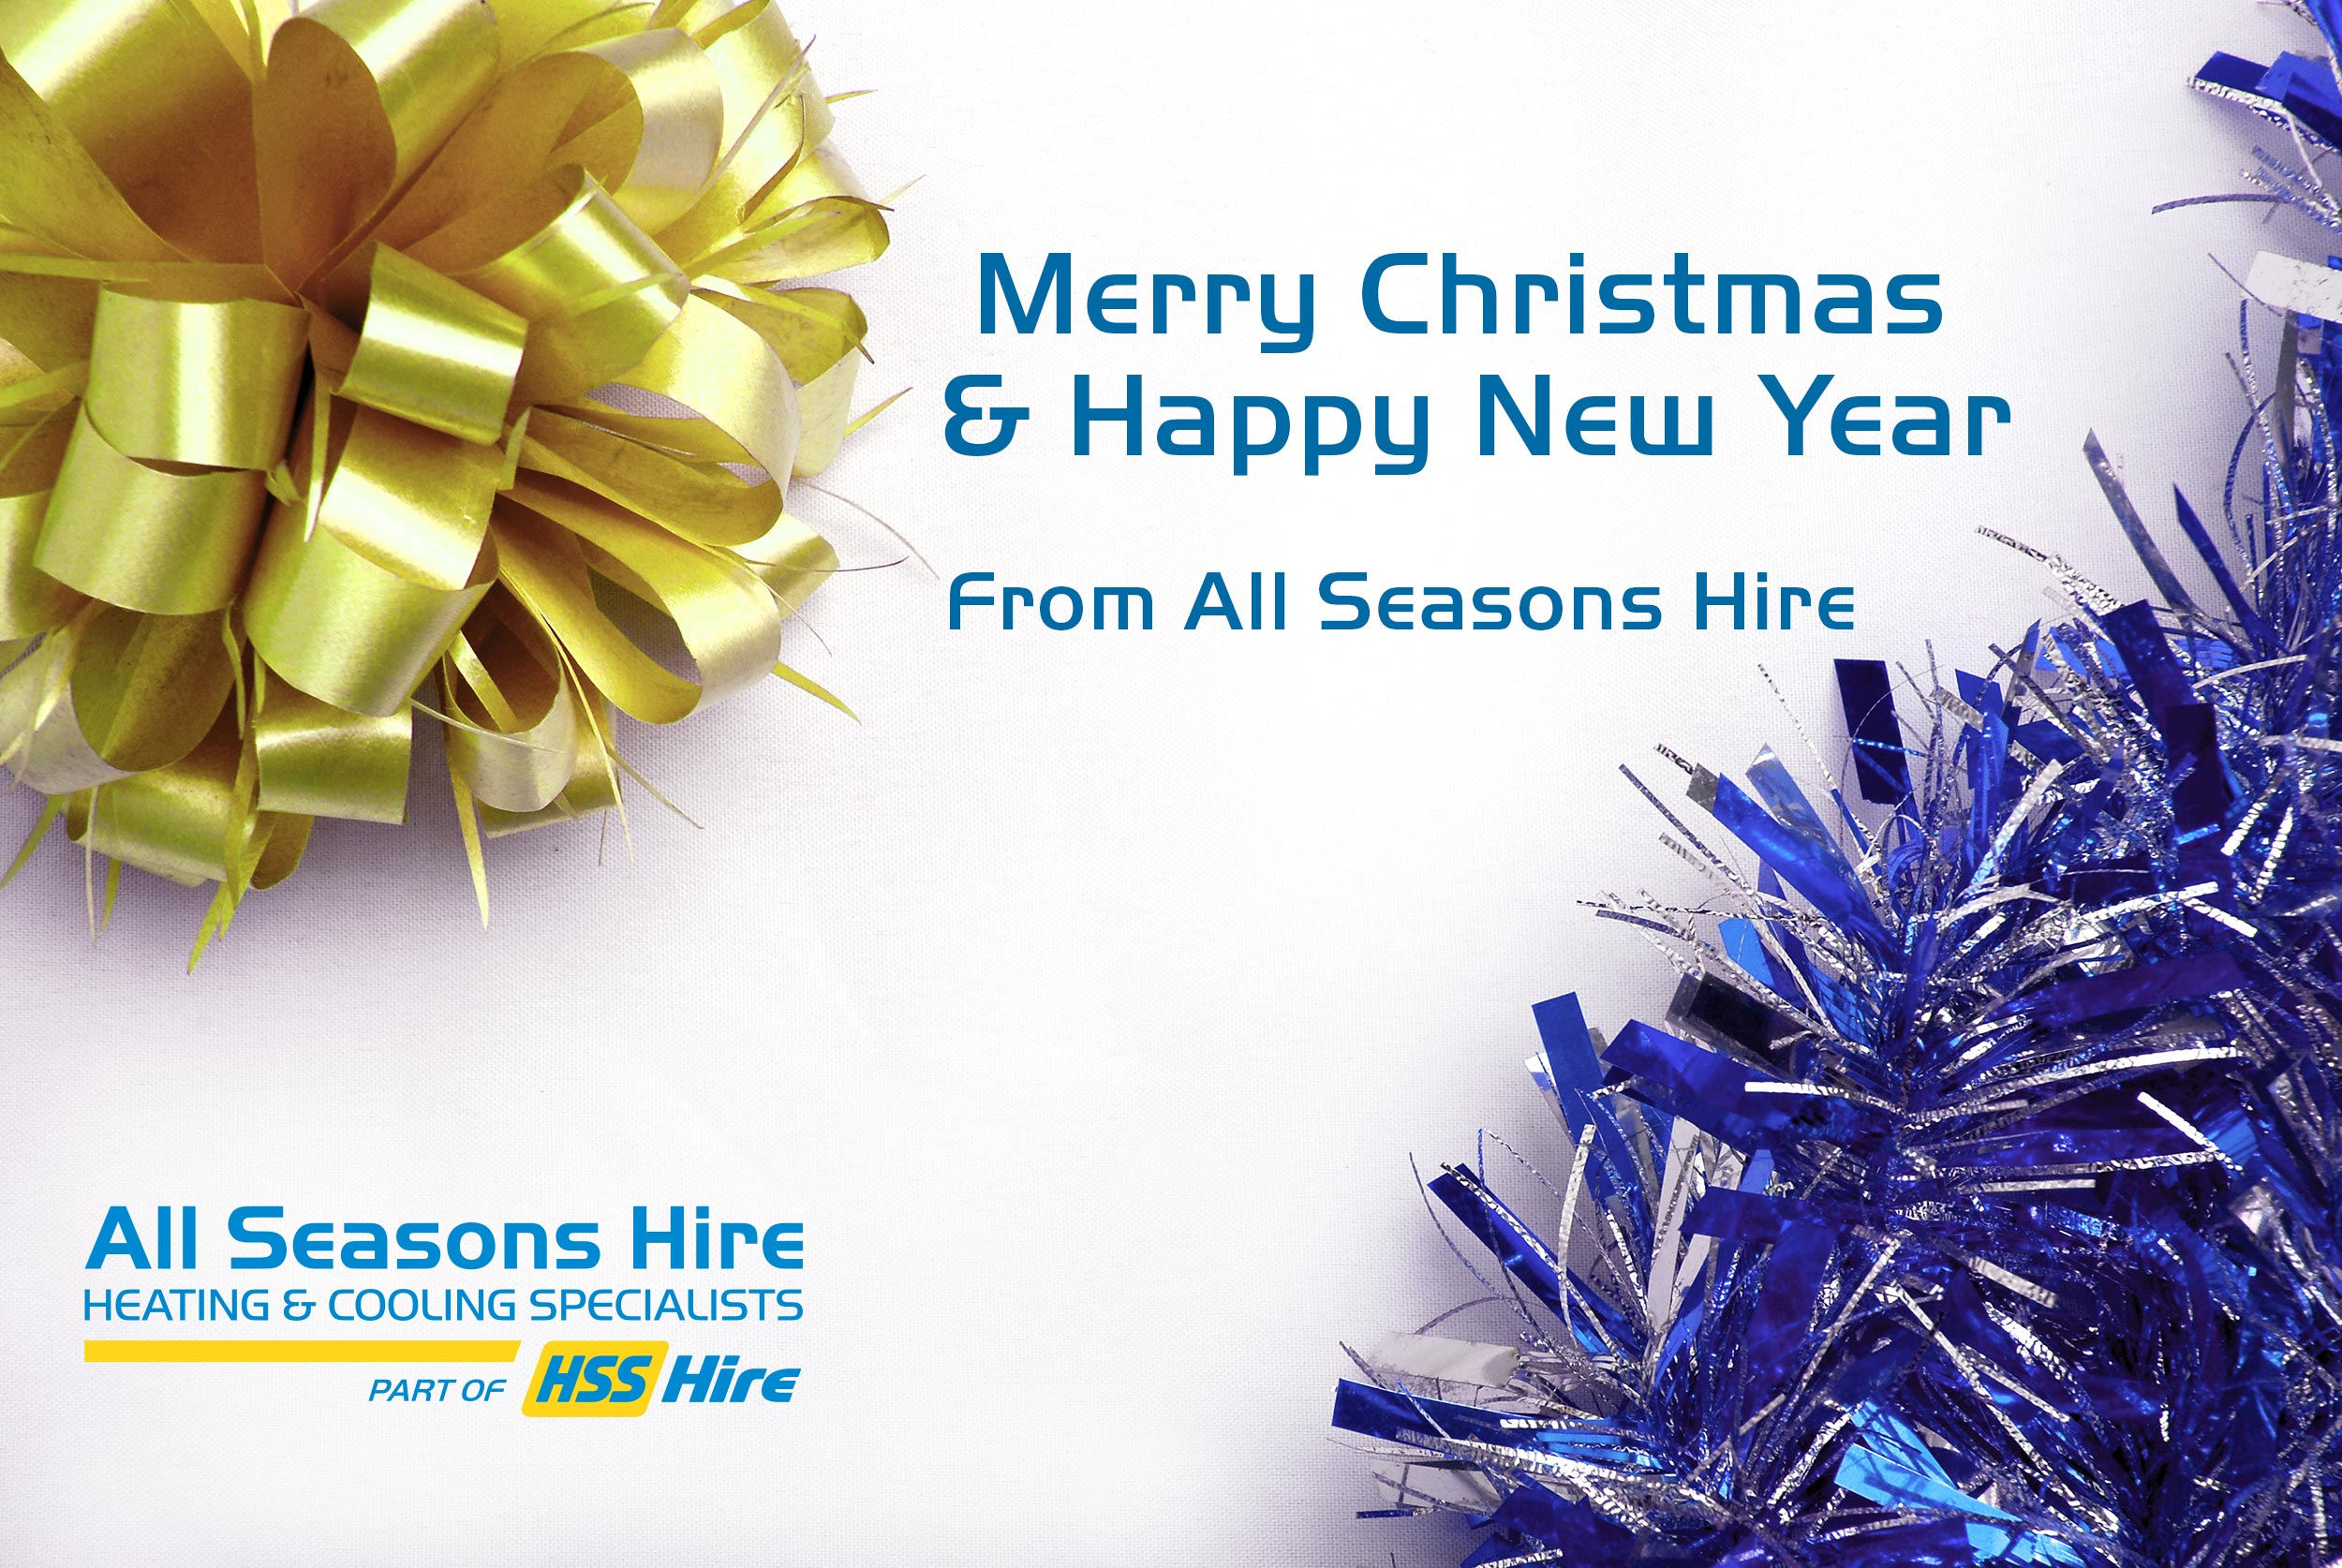 Merry Christmas from All Seasons Hire!